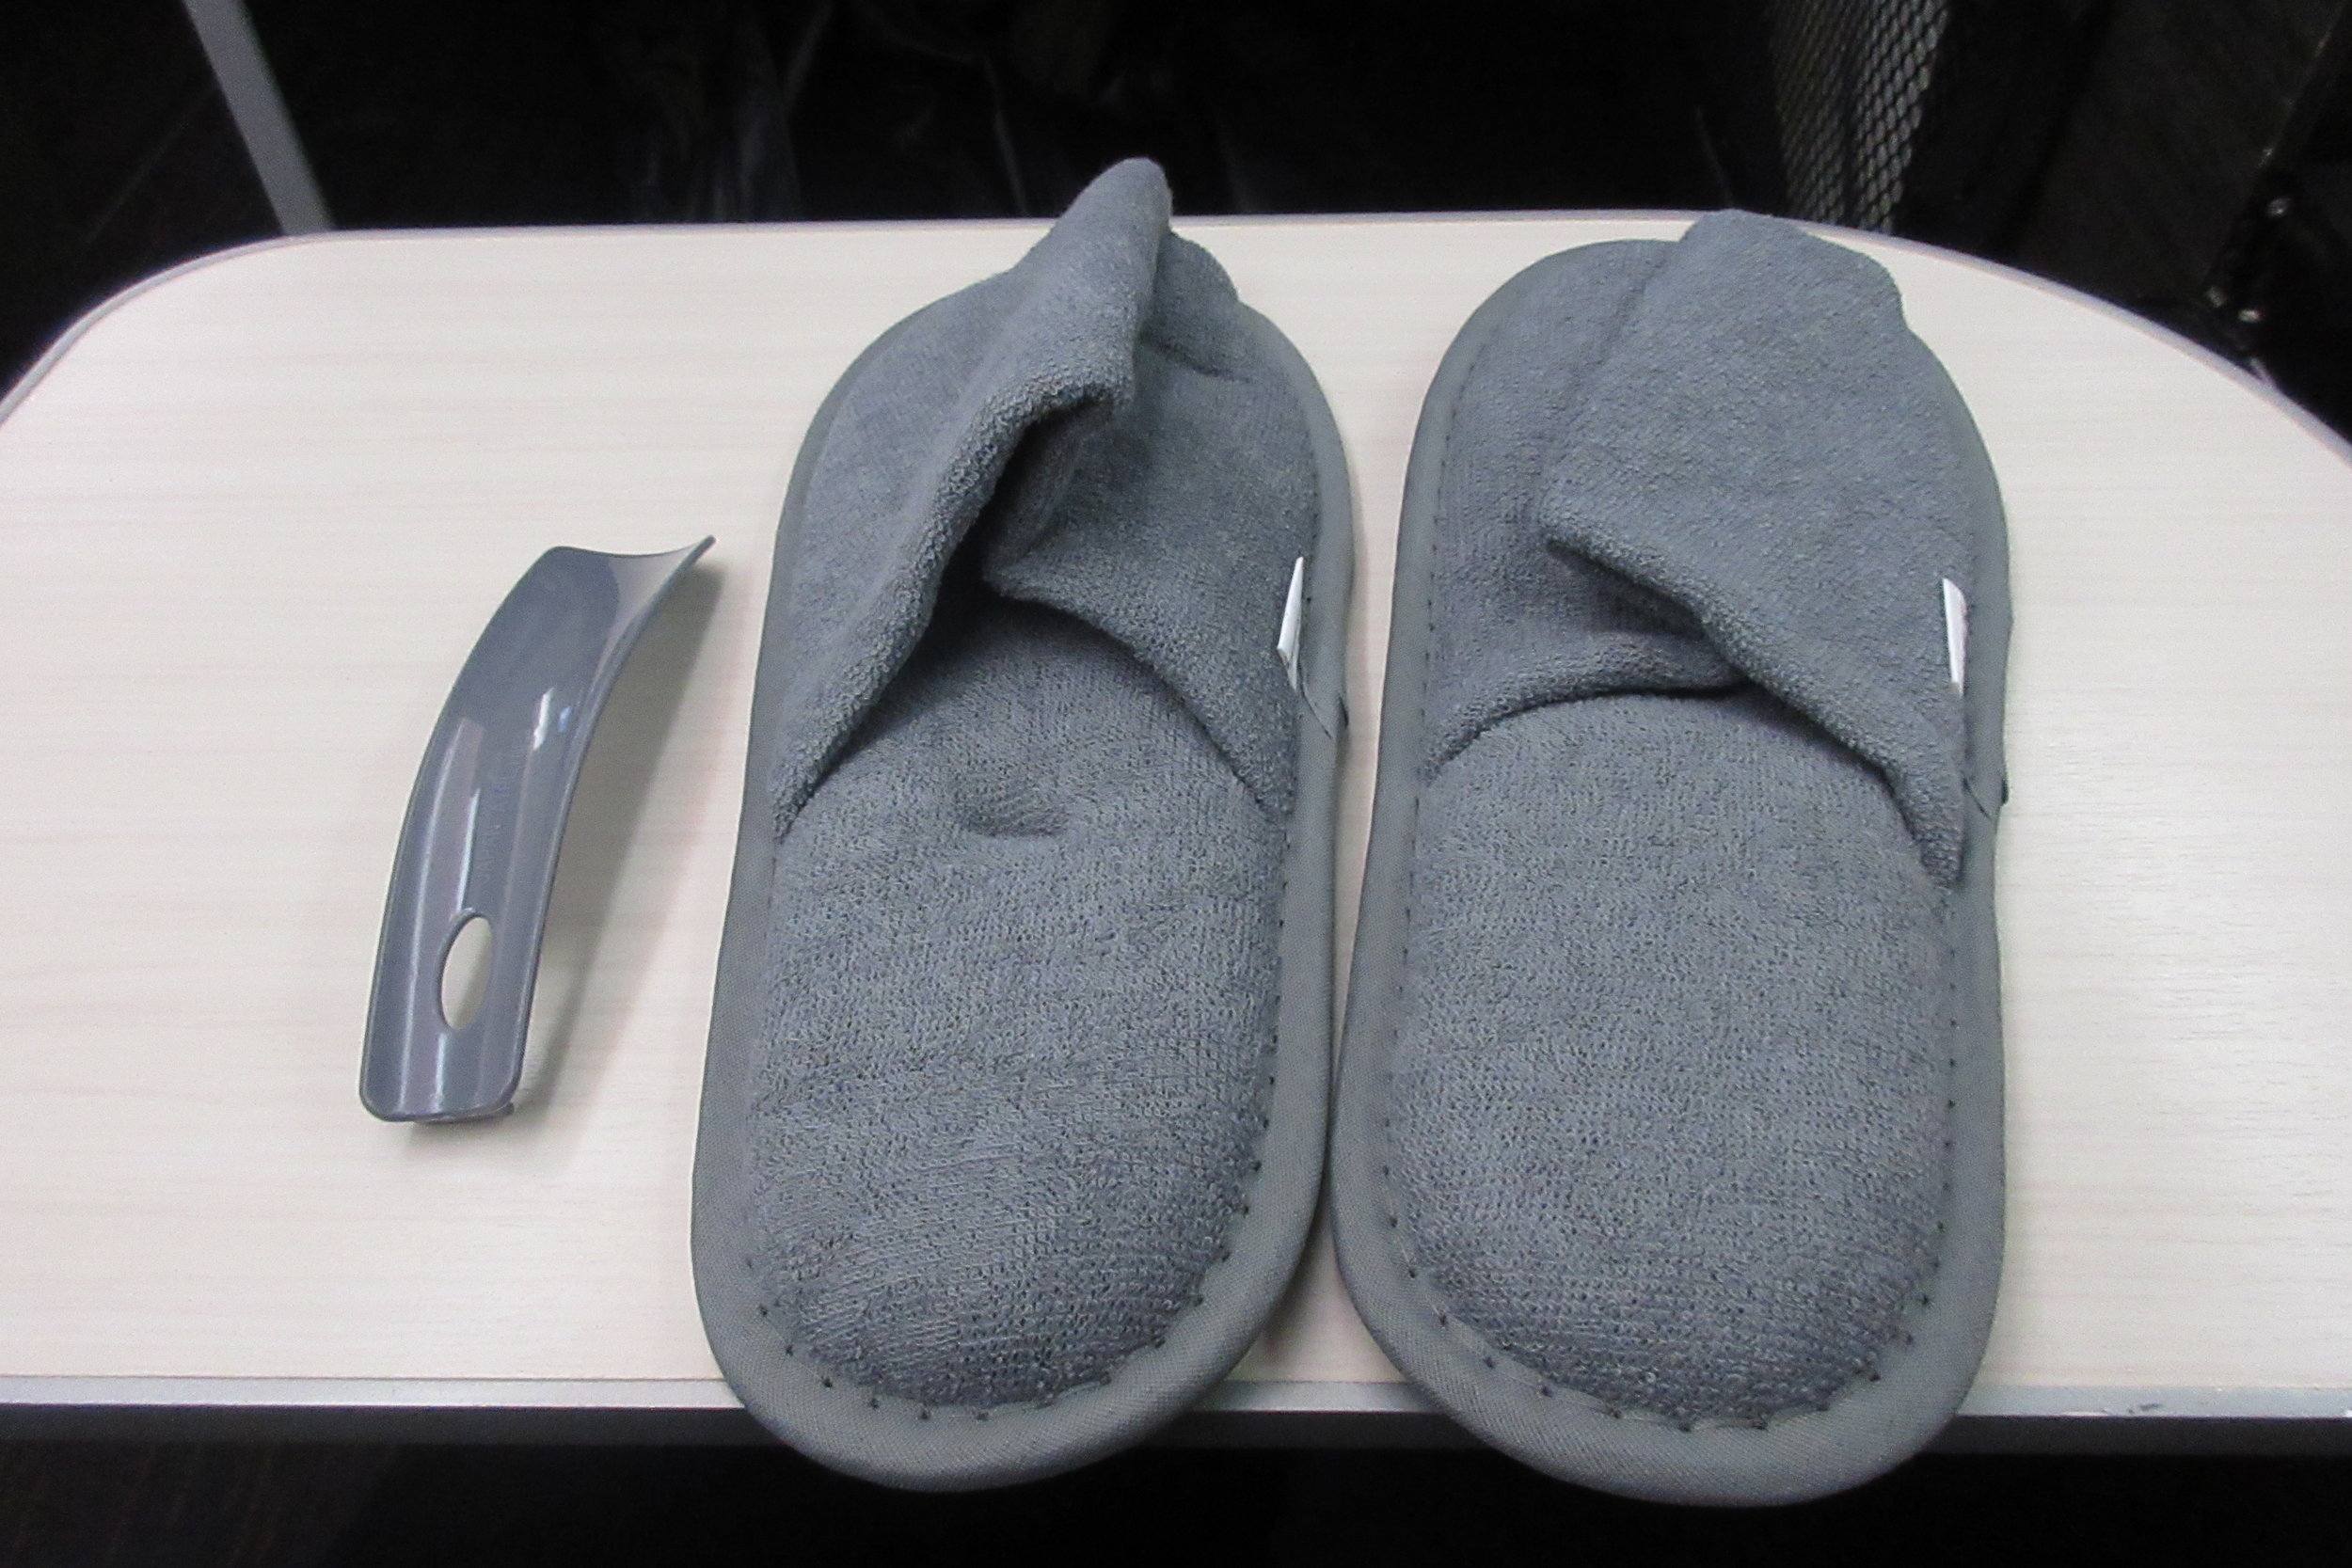 Japan Airlines business class – Slippers